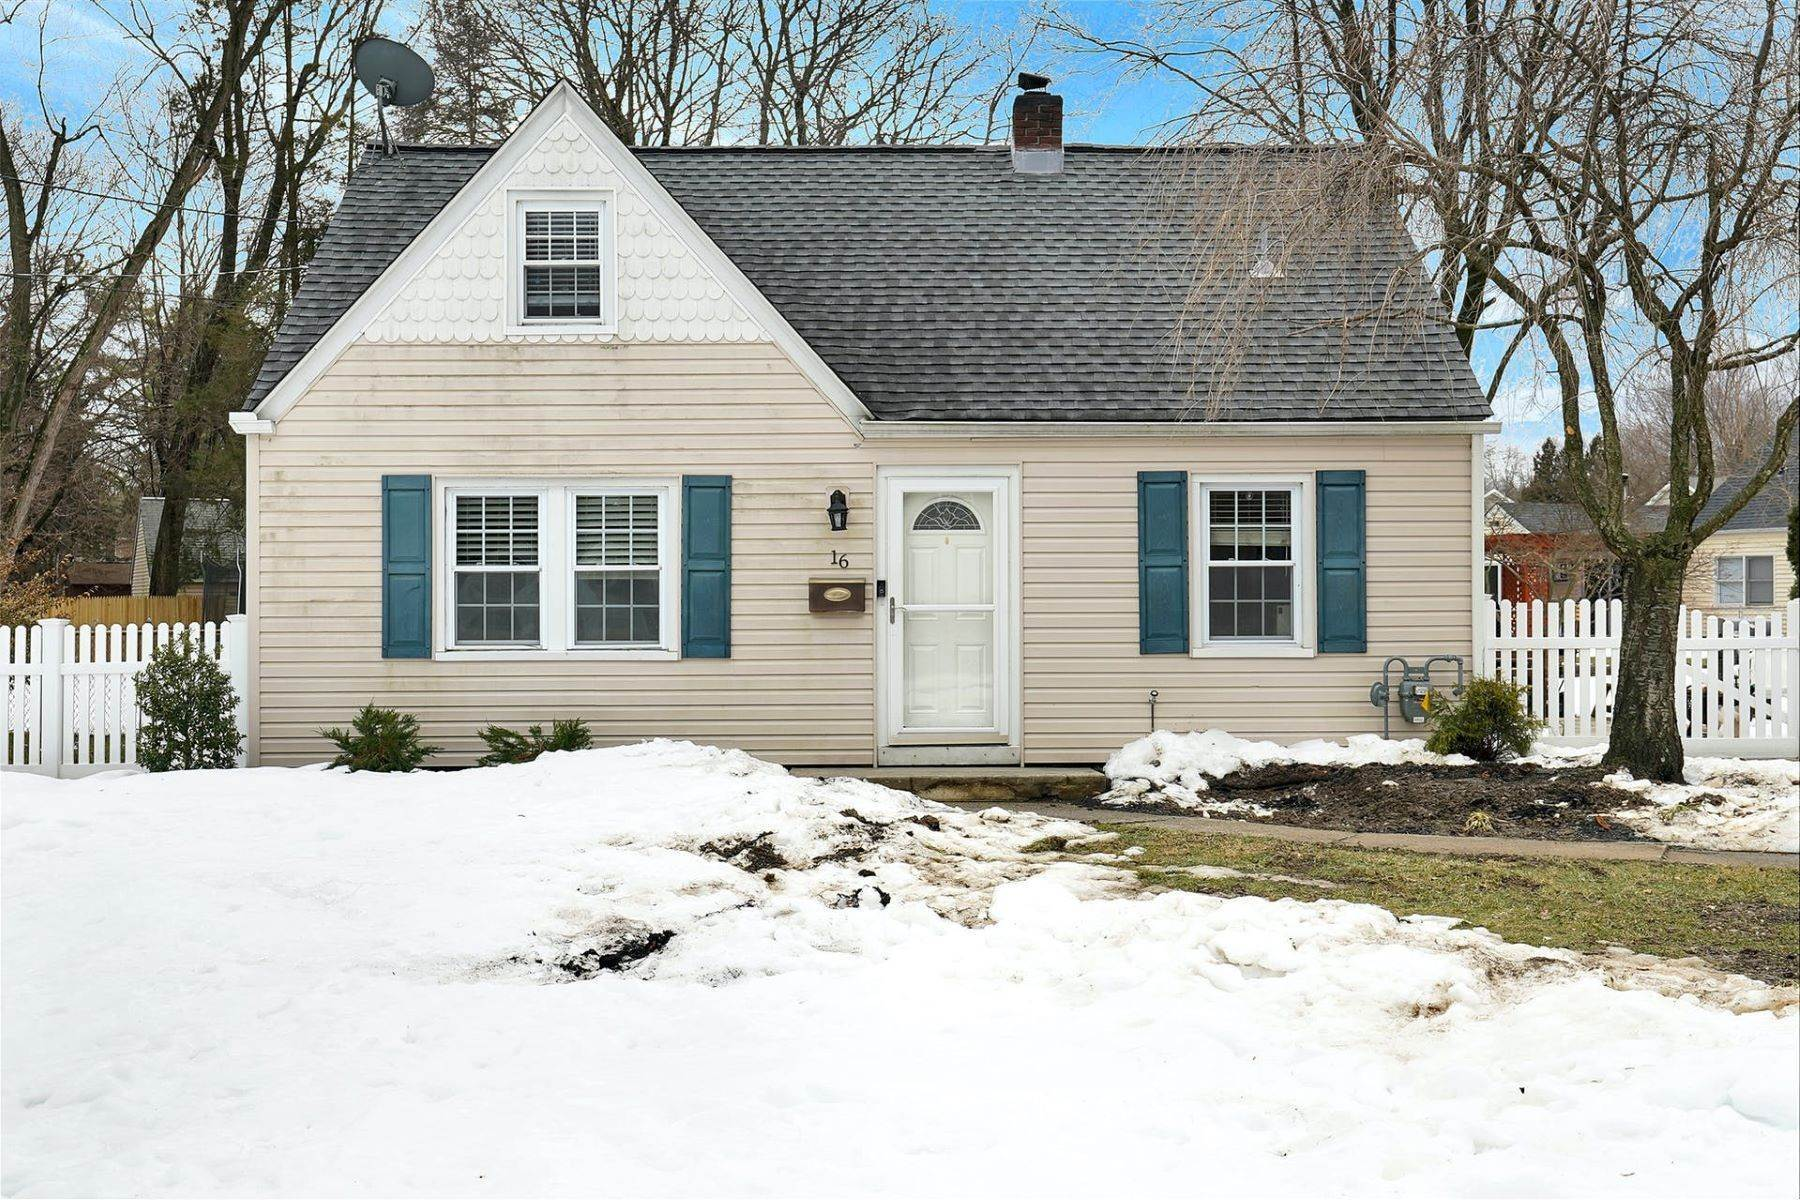 Single Family Homes for Sale at Welcome to this cozy 3BD + bonus room Cape Cod 16 Brookside Ave Pequannock Township, New Jersey 07444 United States